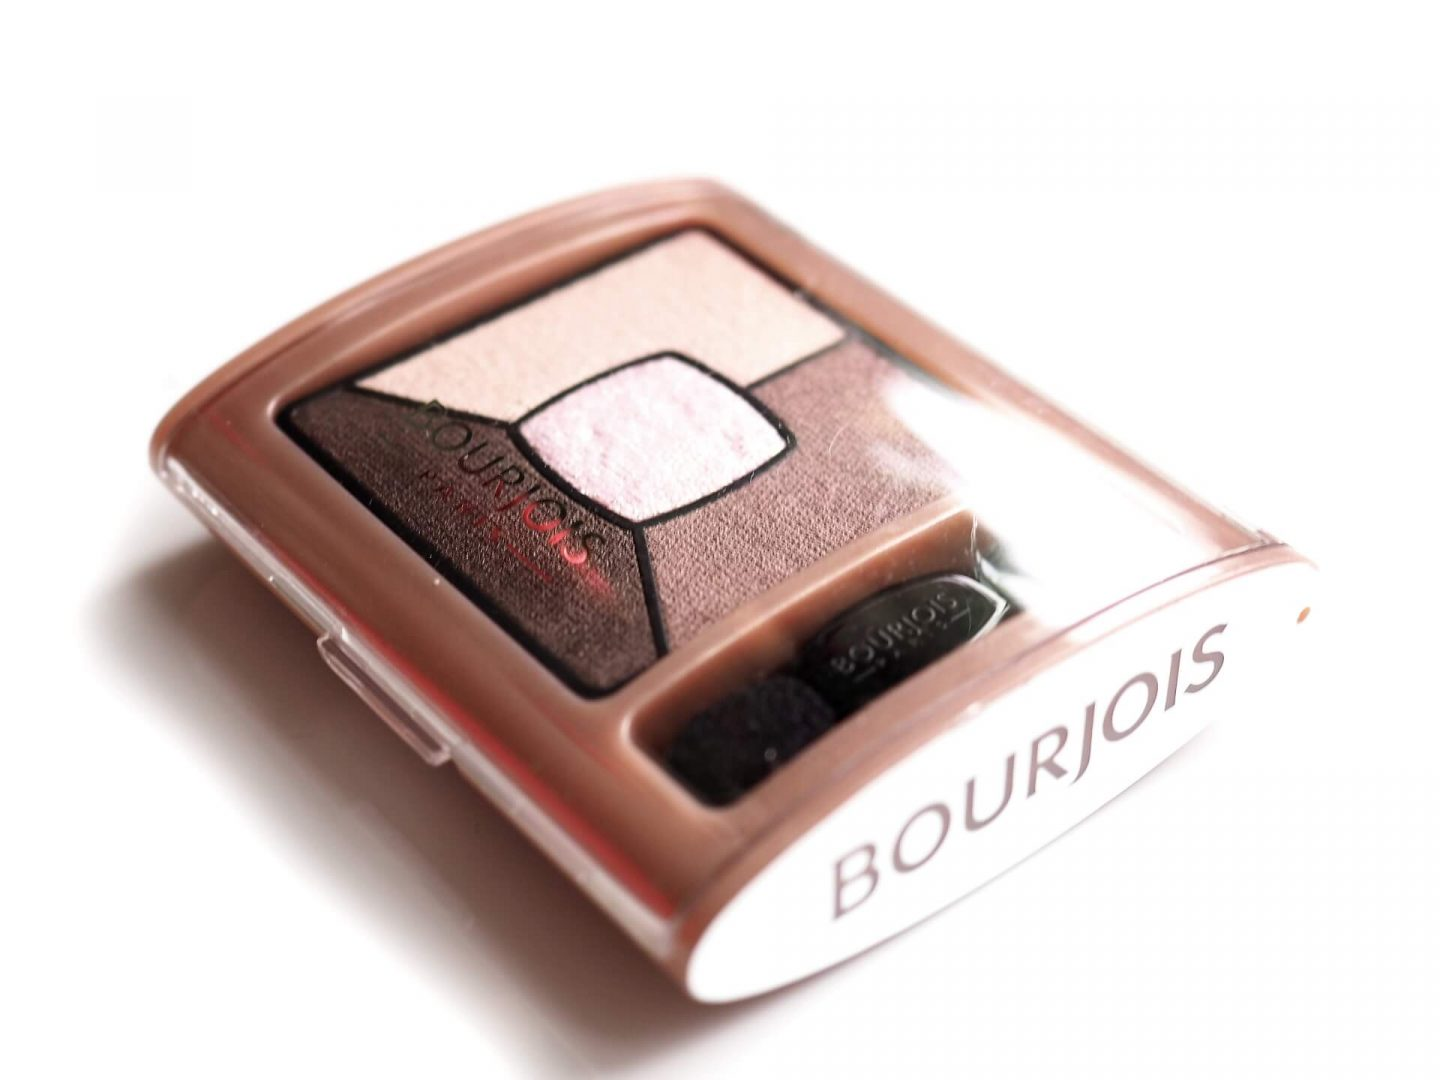 Bourjois Smoky Stories 02 Over Rose